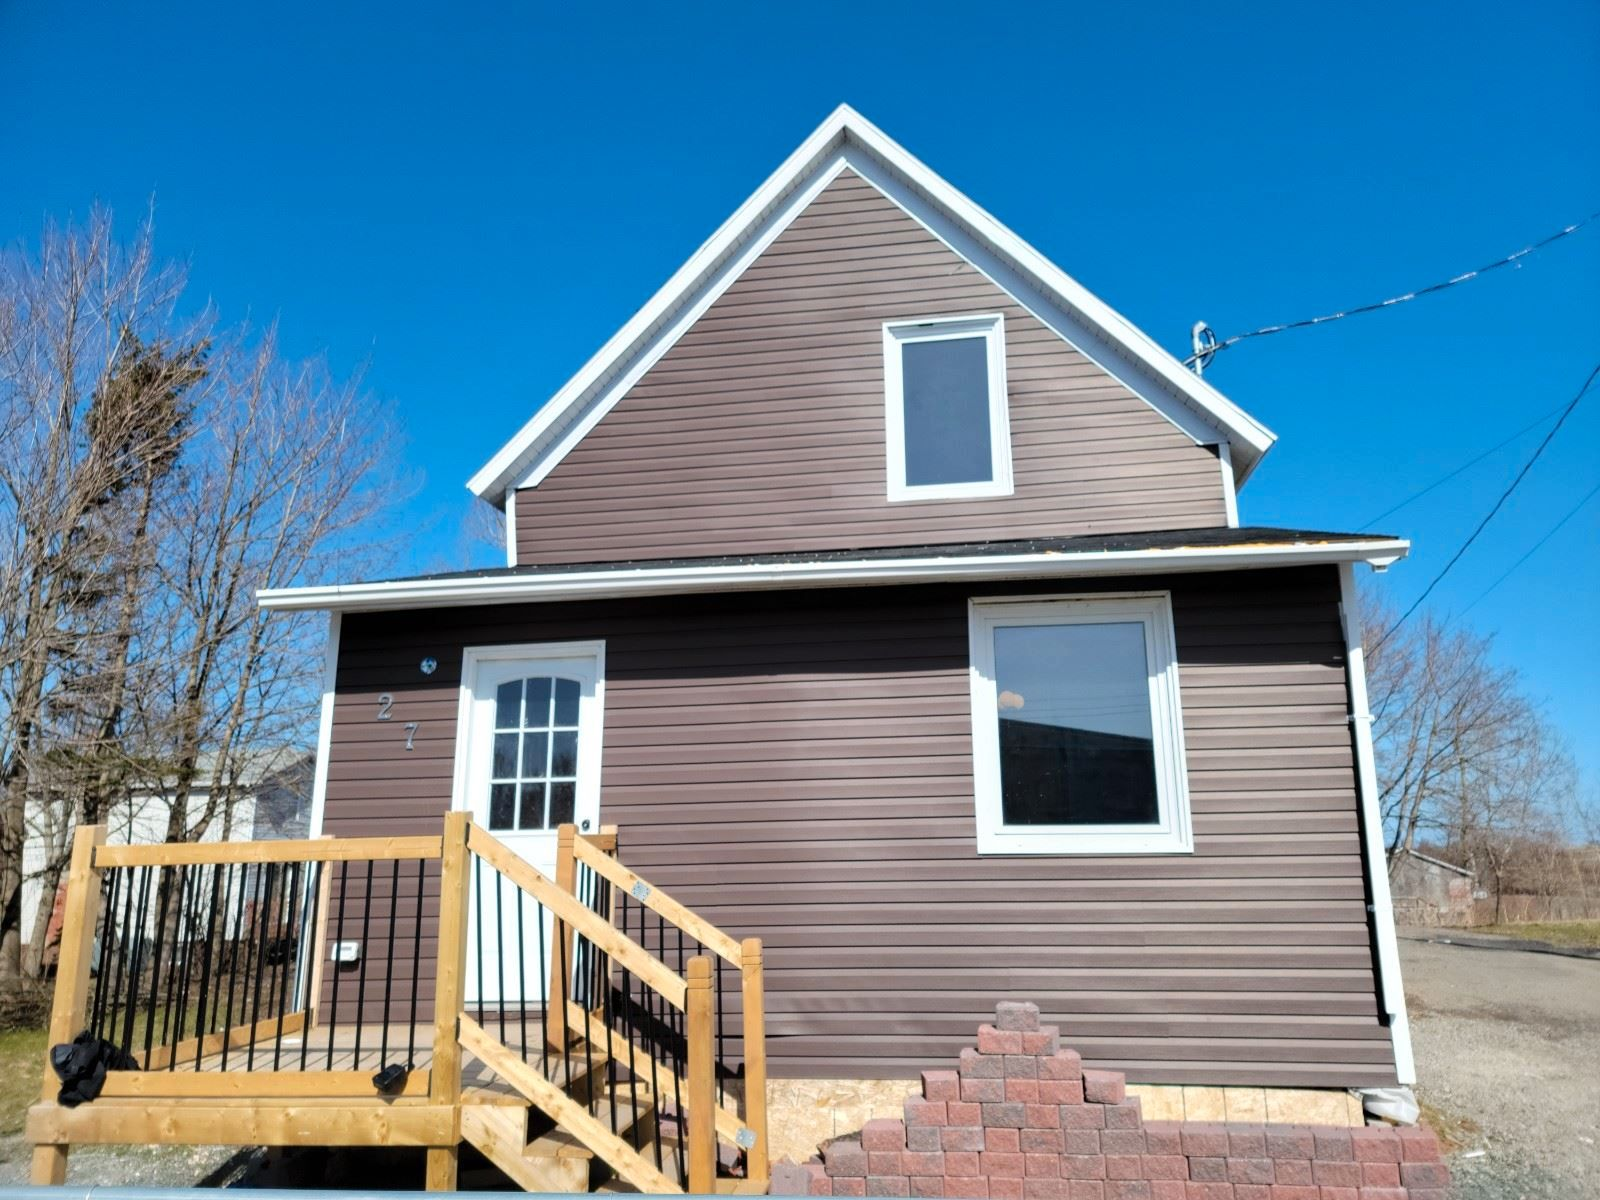 Main Photo: 27 Armstrong Court in Sydney: 201-Sydney Residential for sale (Cape Breton)  : MLS®# 202107835